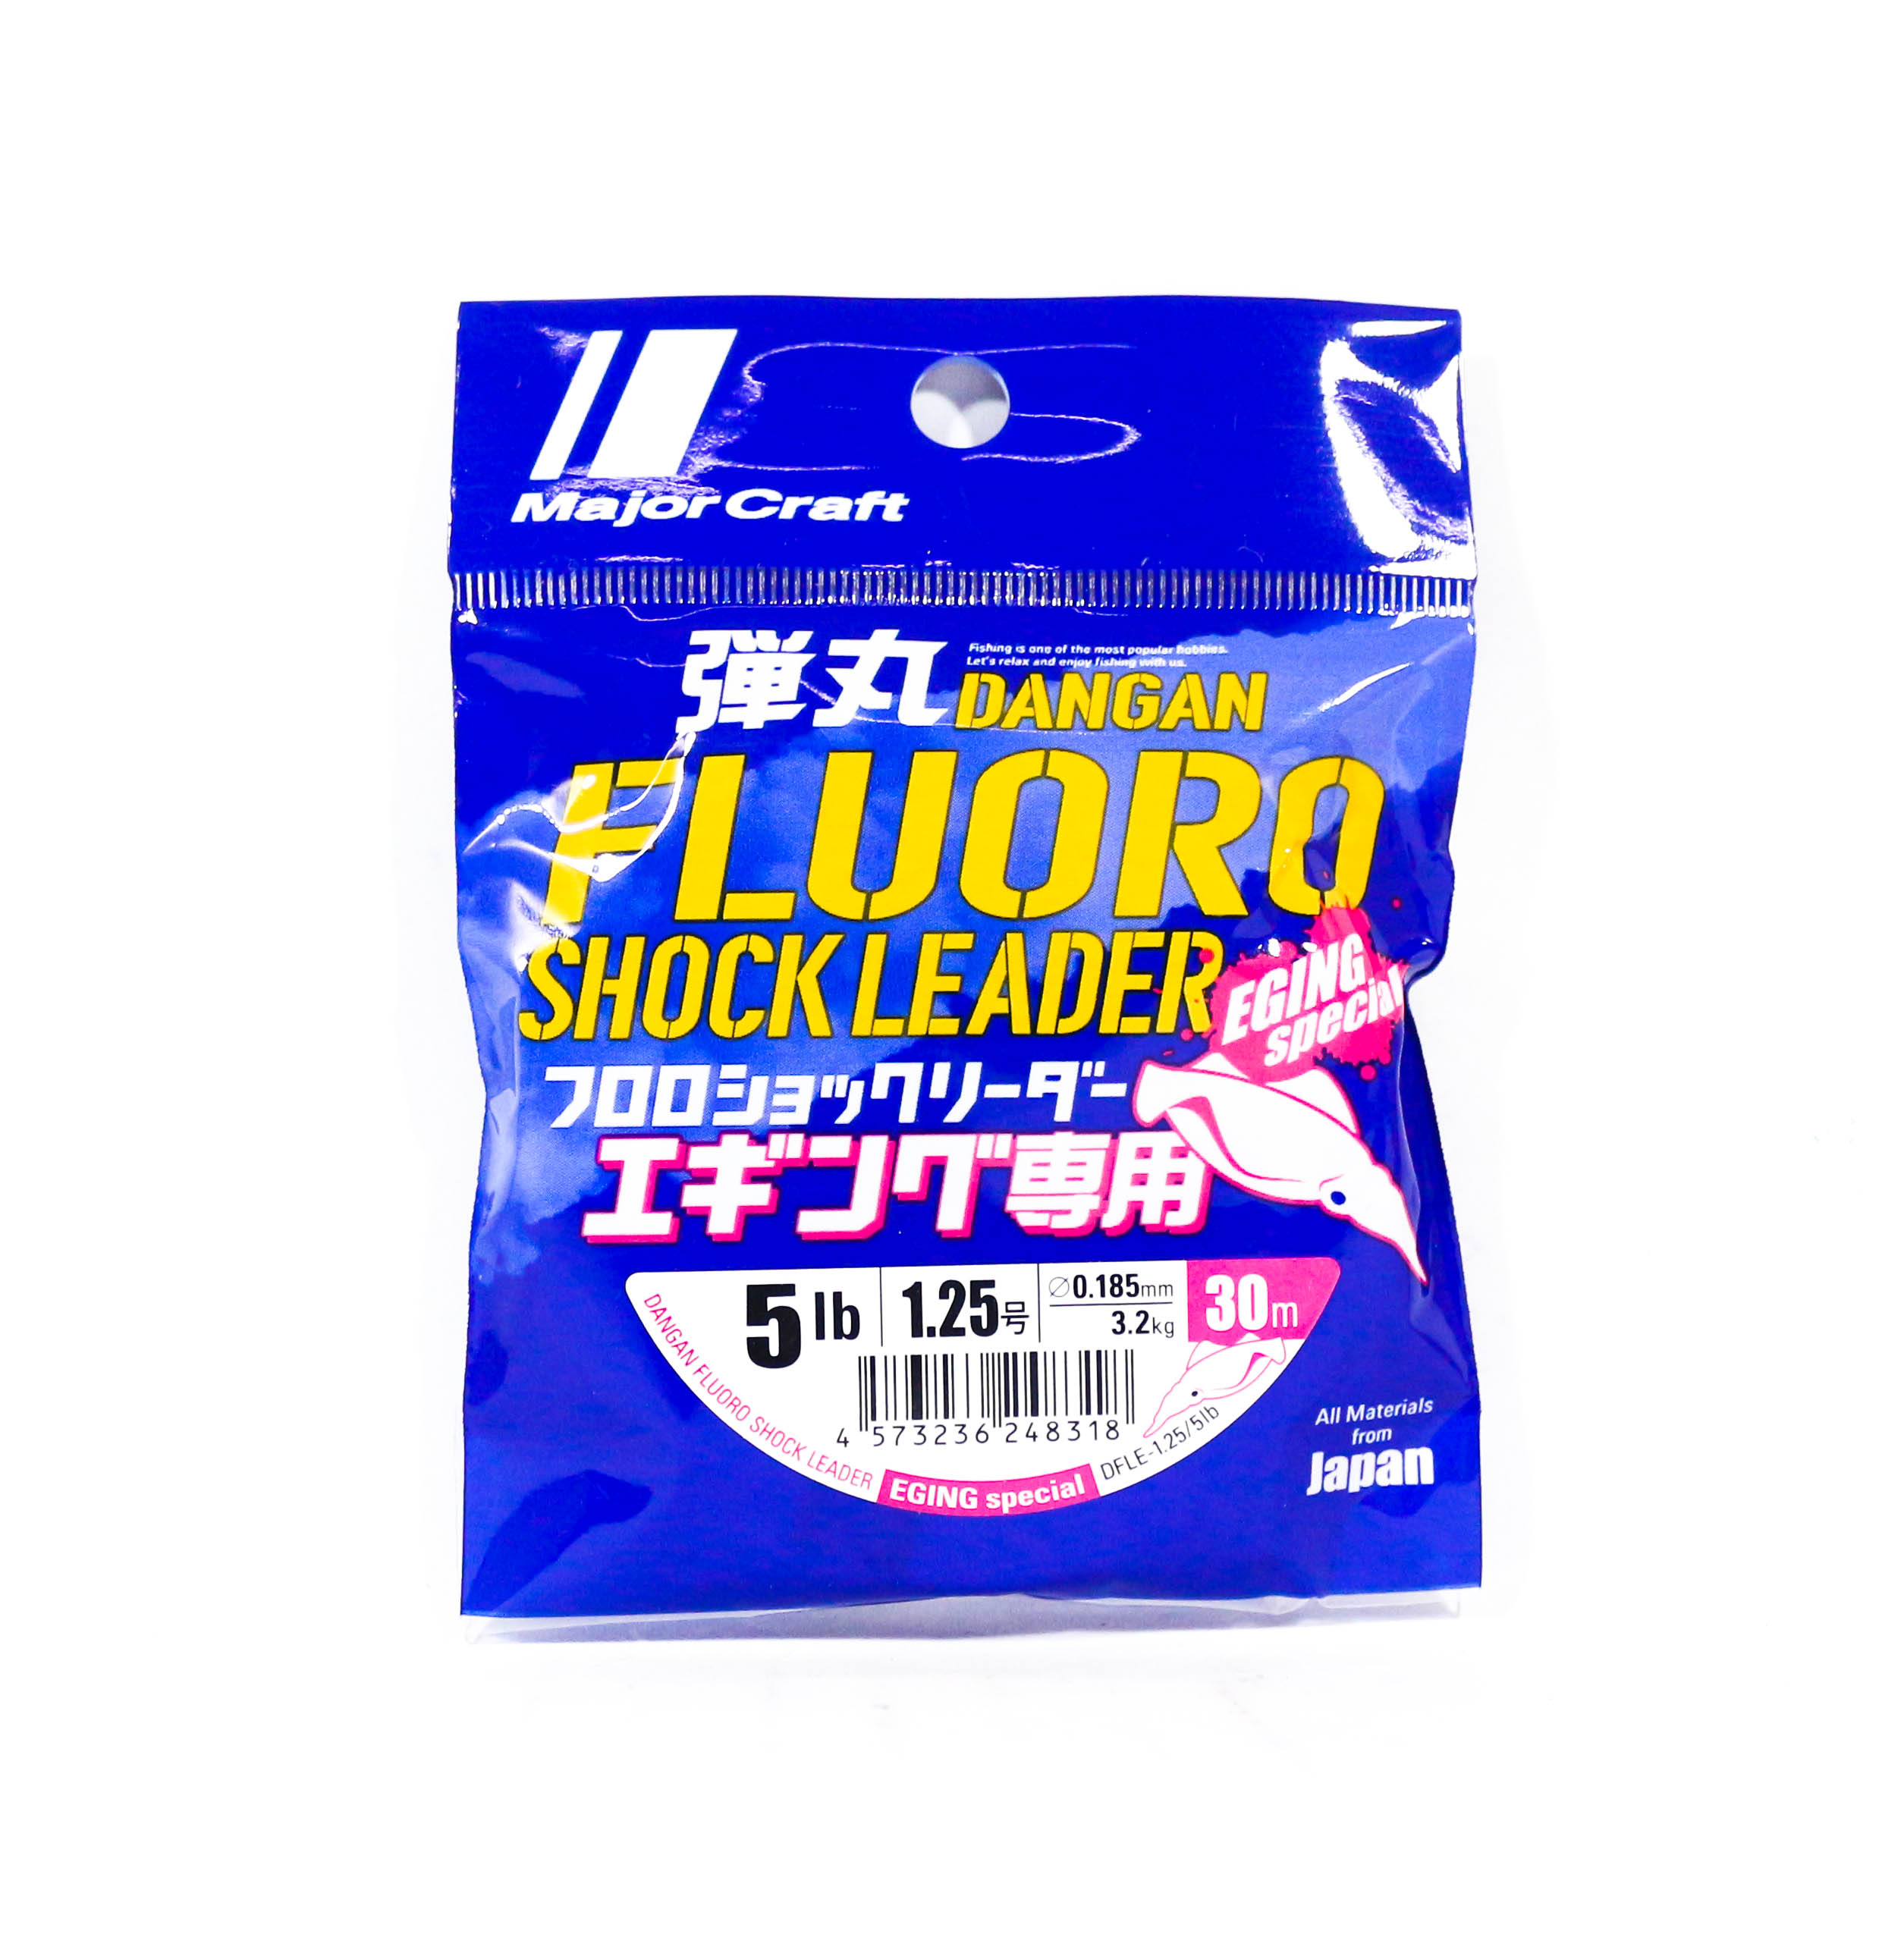 Major Craft Fluorocarbon Shock Leader Line 30m Eging DFLE-1.25 5lb (8318)